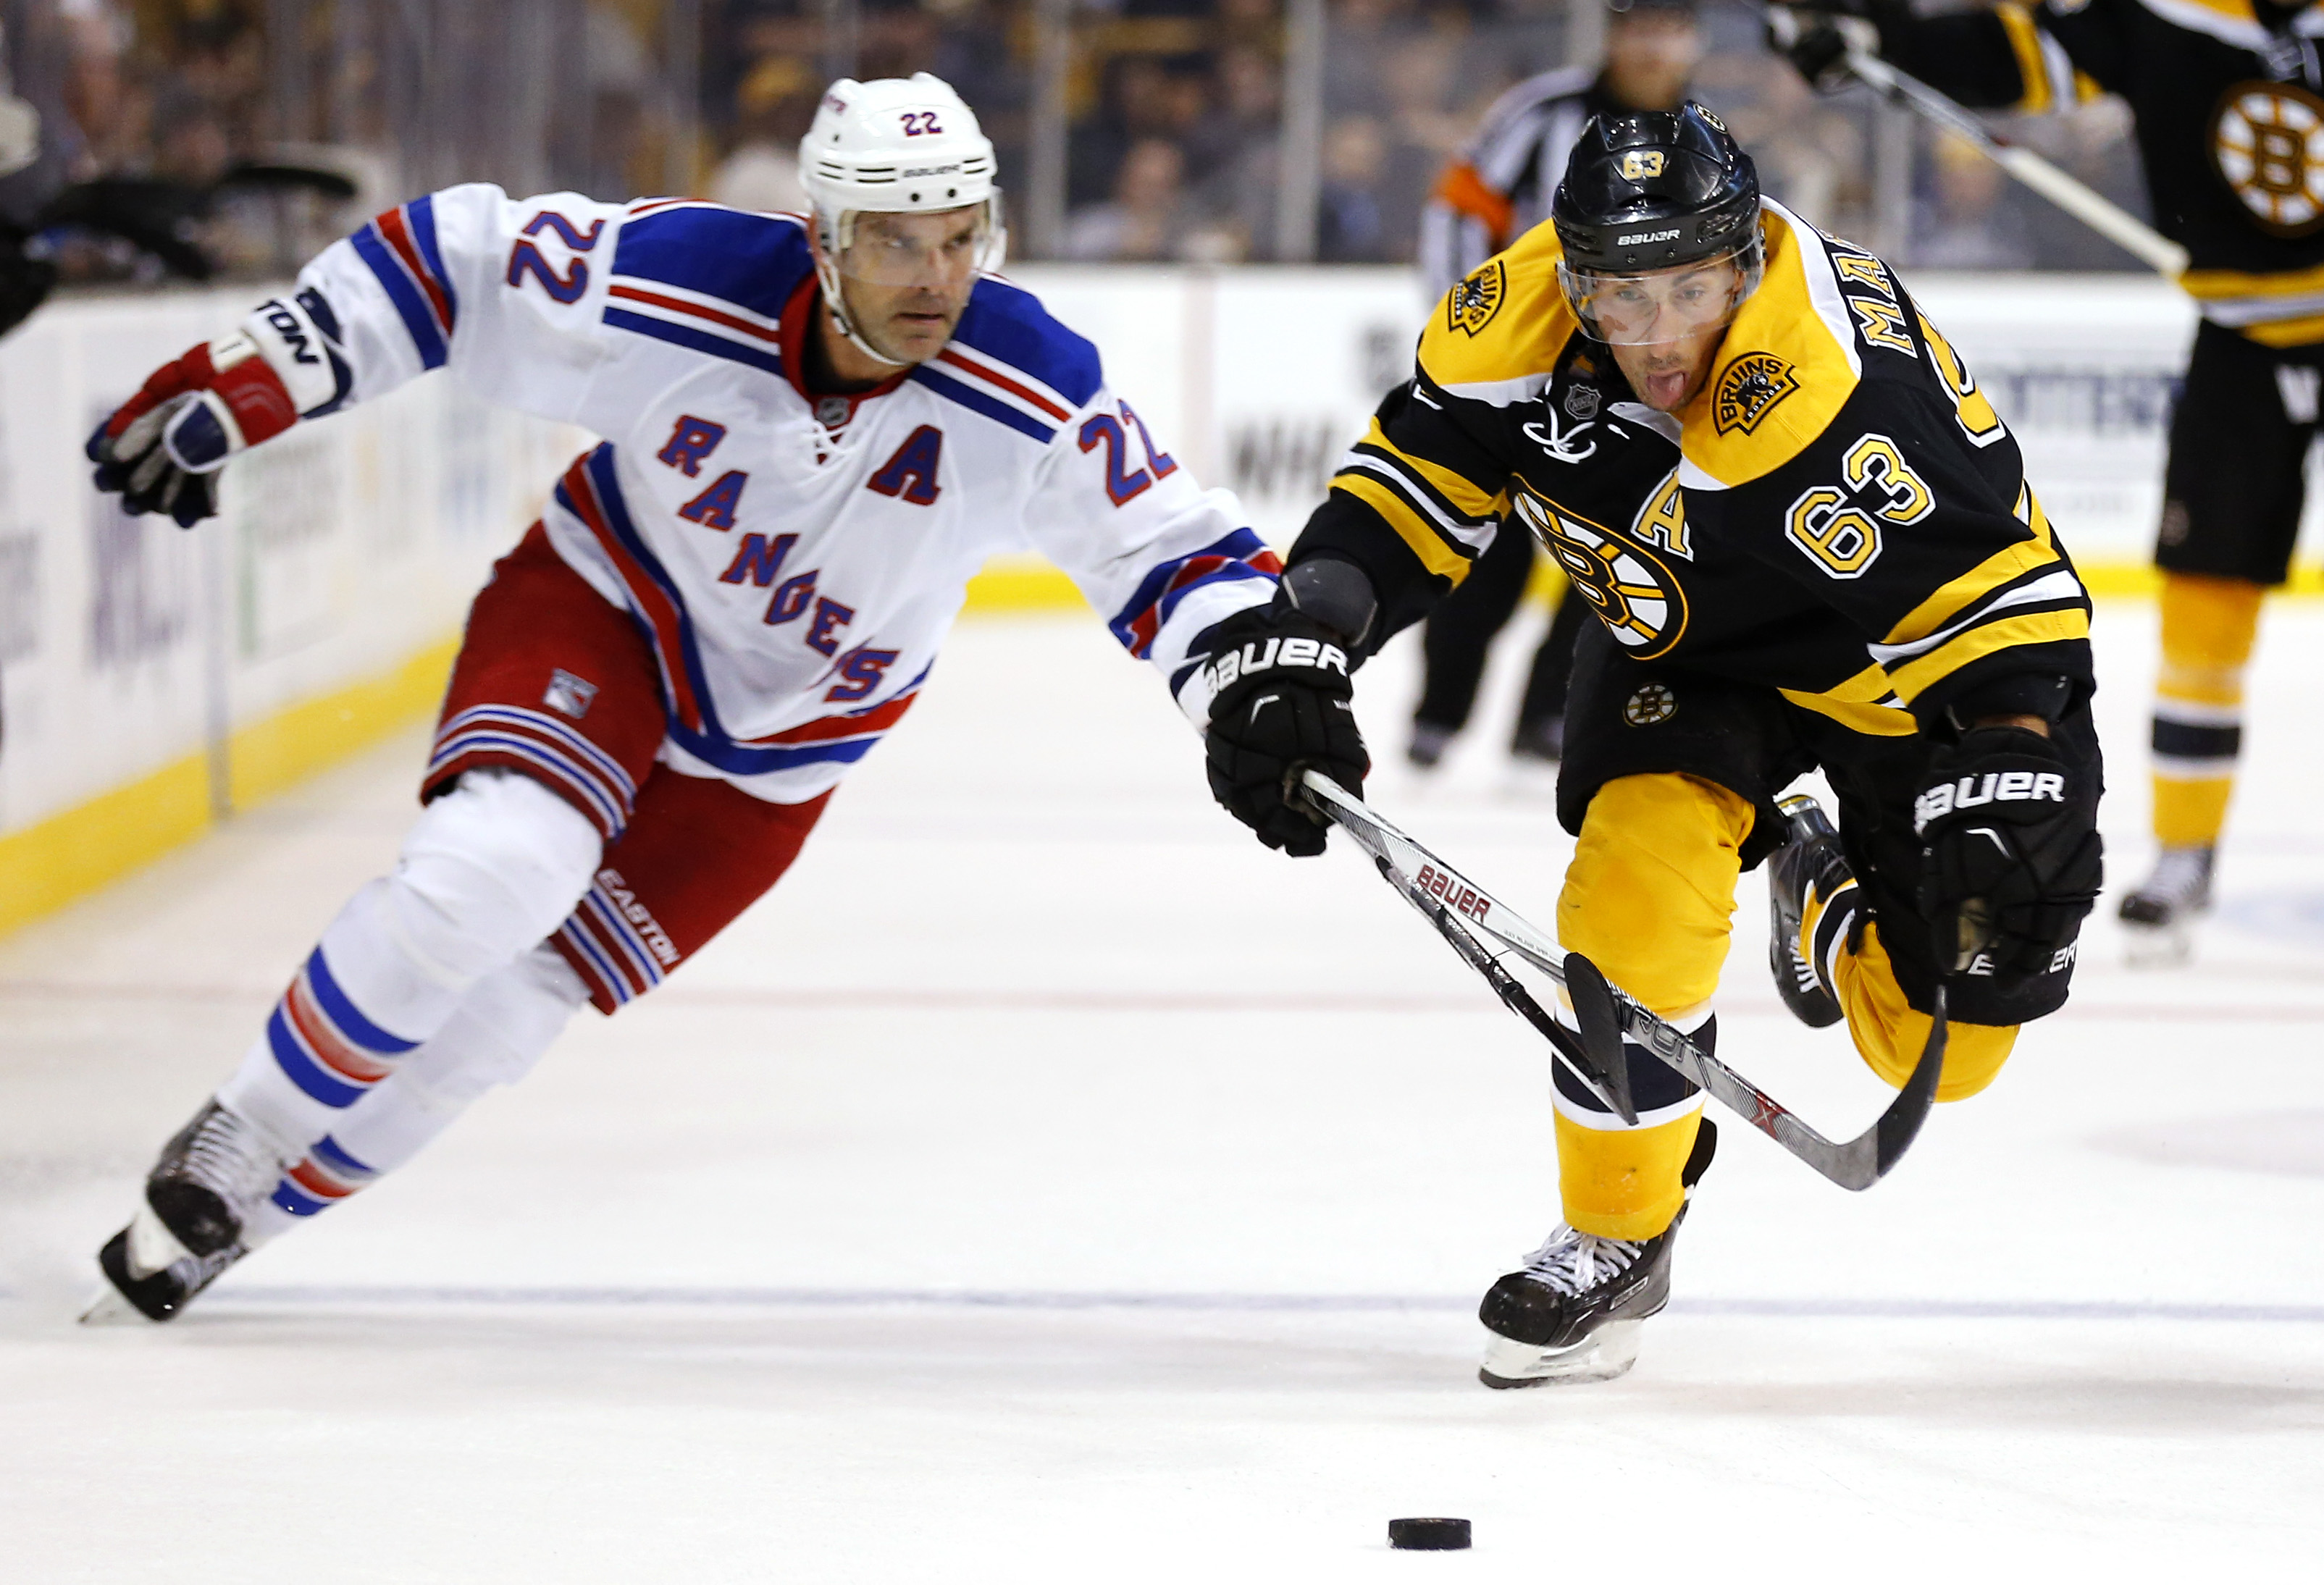 Boston Bruins' Brad Marchand (63) chases a loose puck with New York Rangers' Dan Boyle during the second period of an NHL preseason hockey game in Boston on Thursday, Sept. 24, 2015. (AP Photo/Winslow Townson)